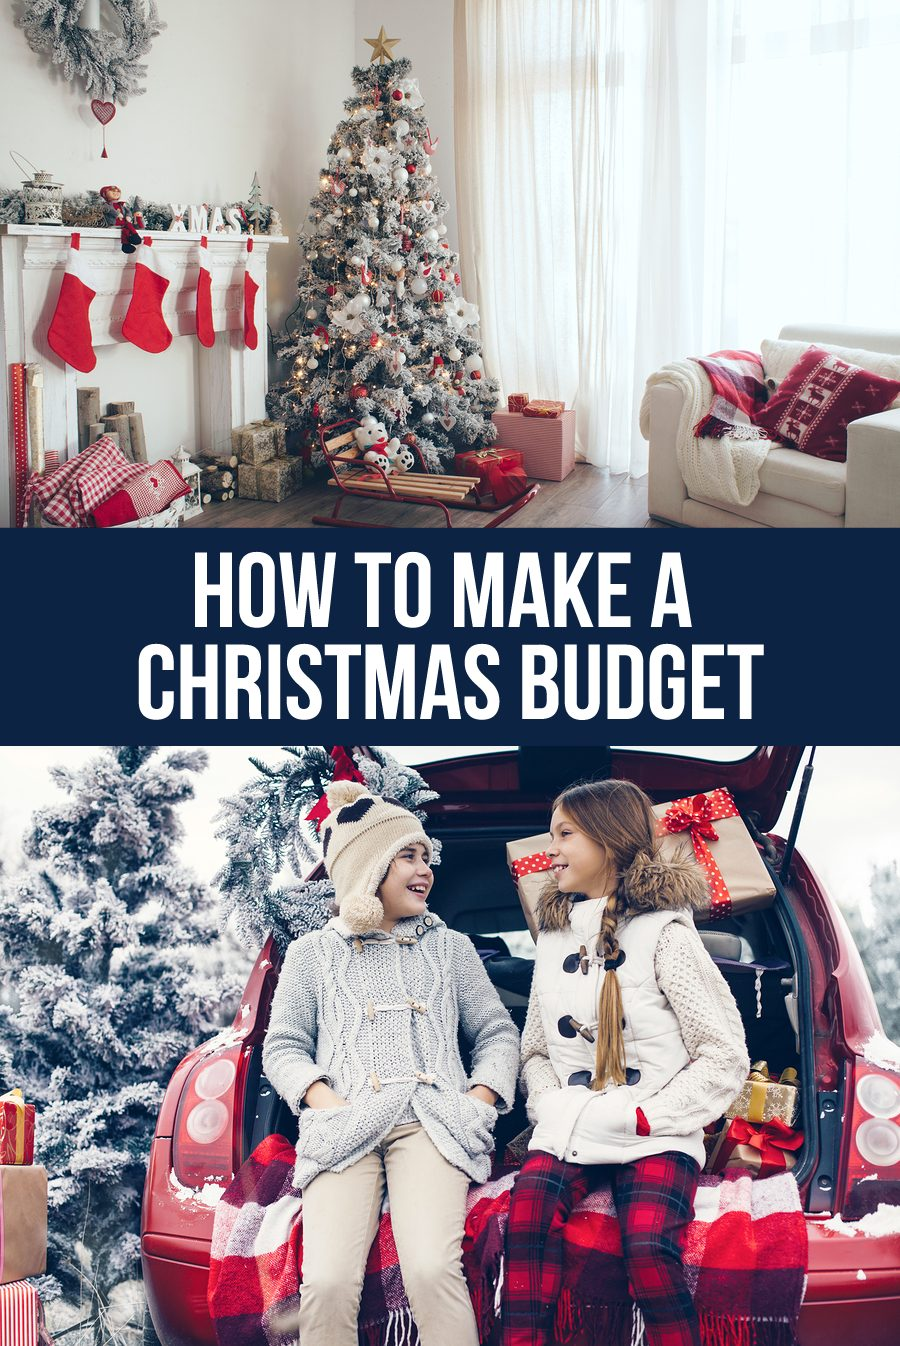 How to make a Christmas budget - simple tips to stick to a plan for the holidays from www.thirtyhandmadedays.com